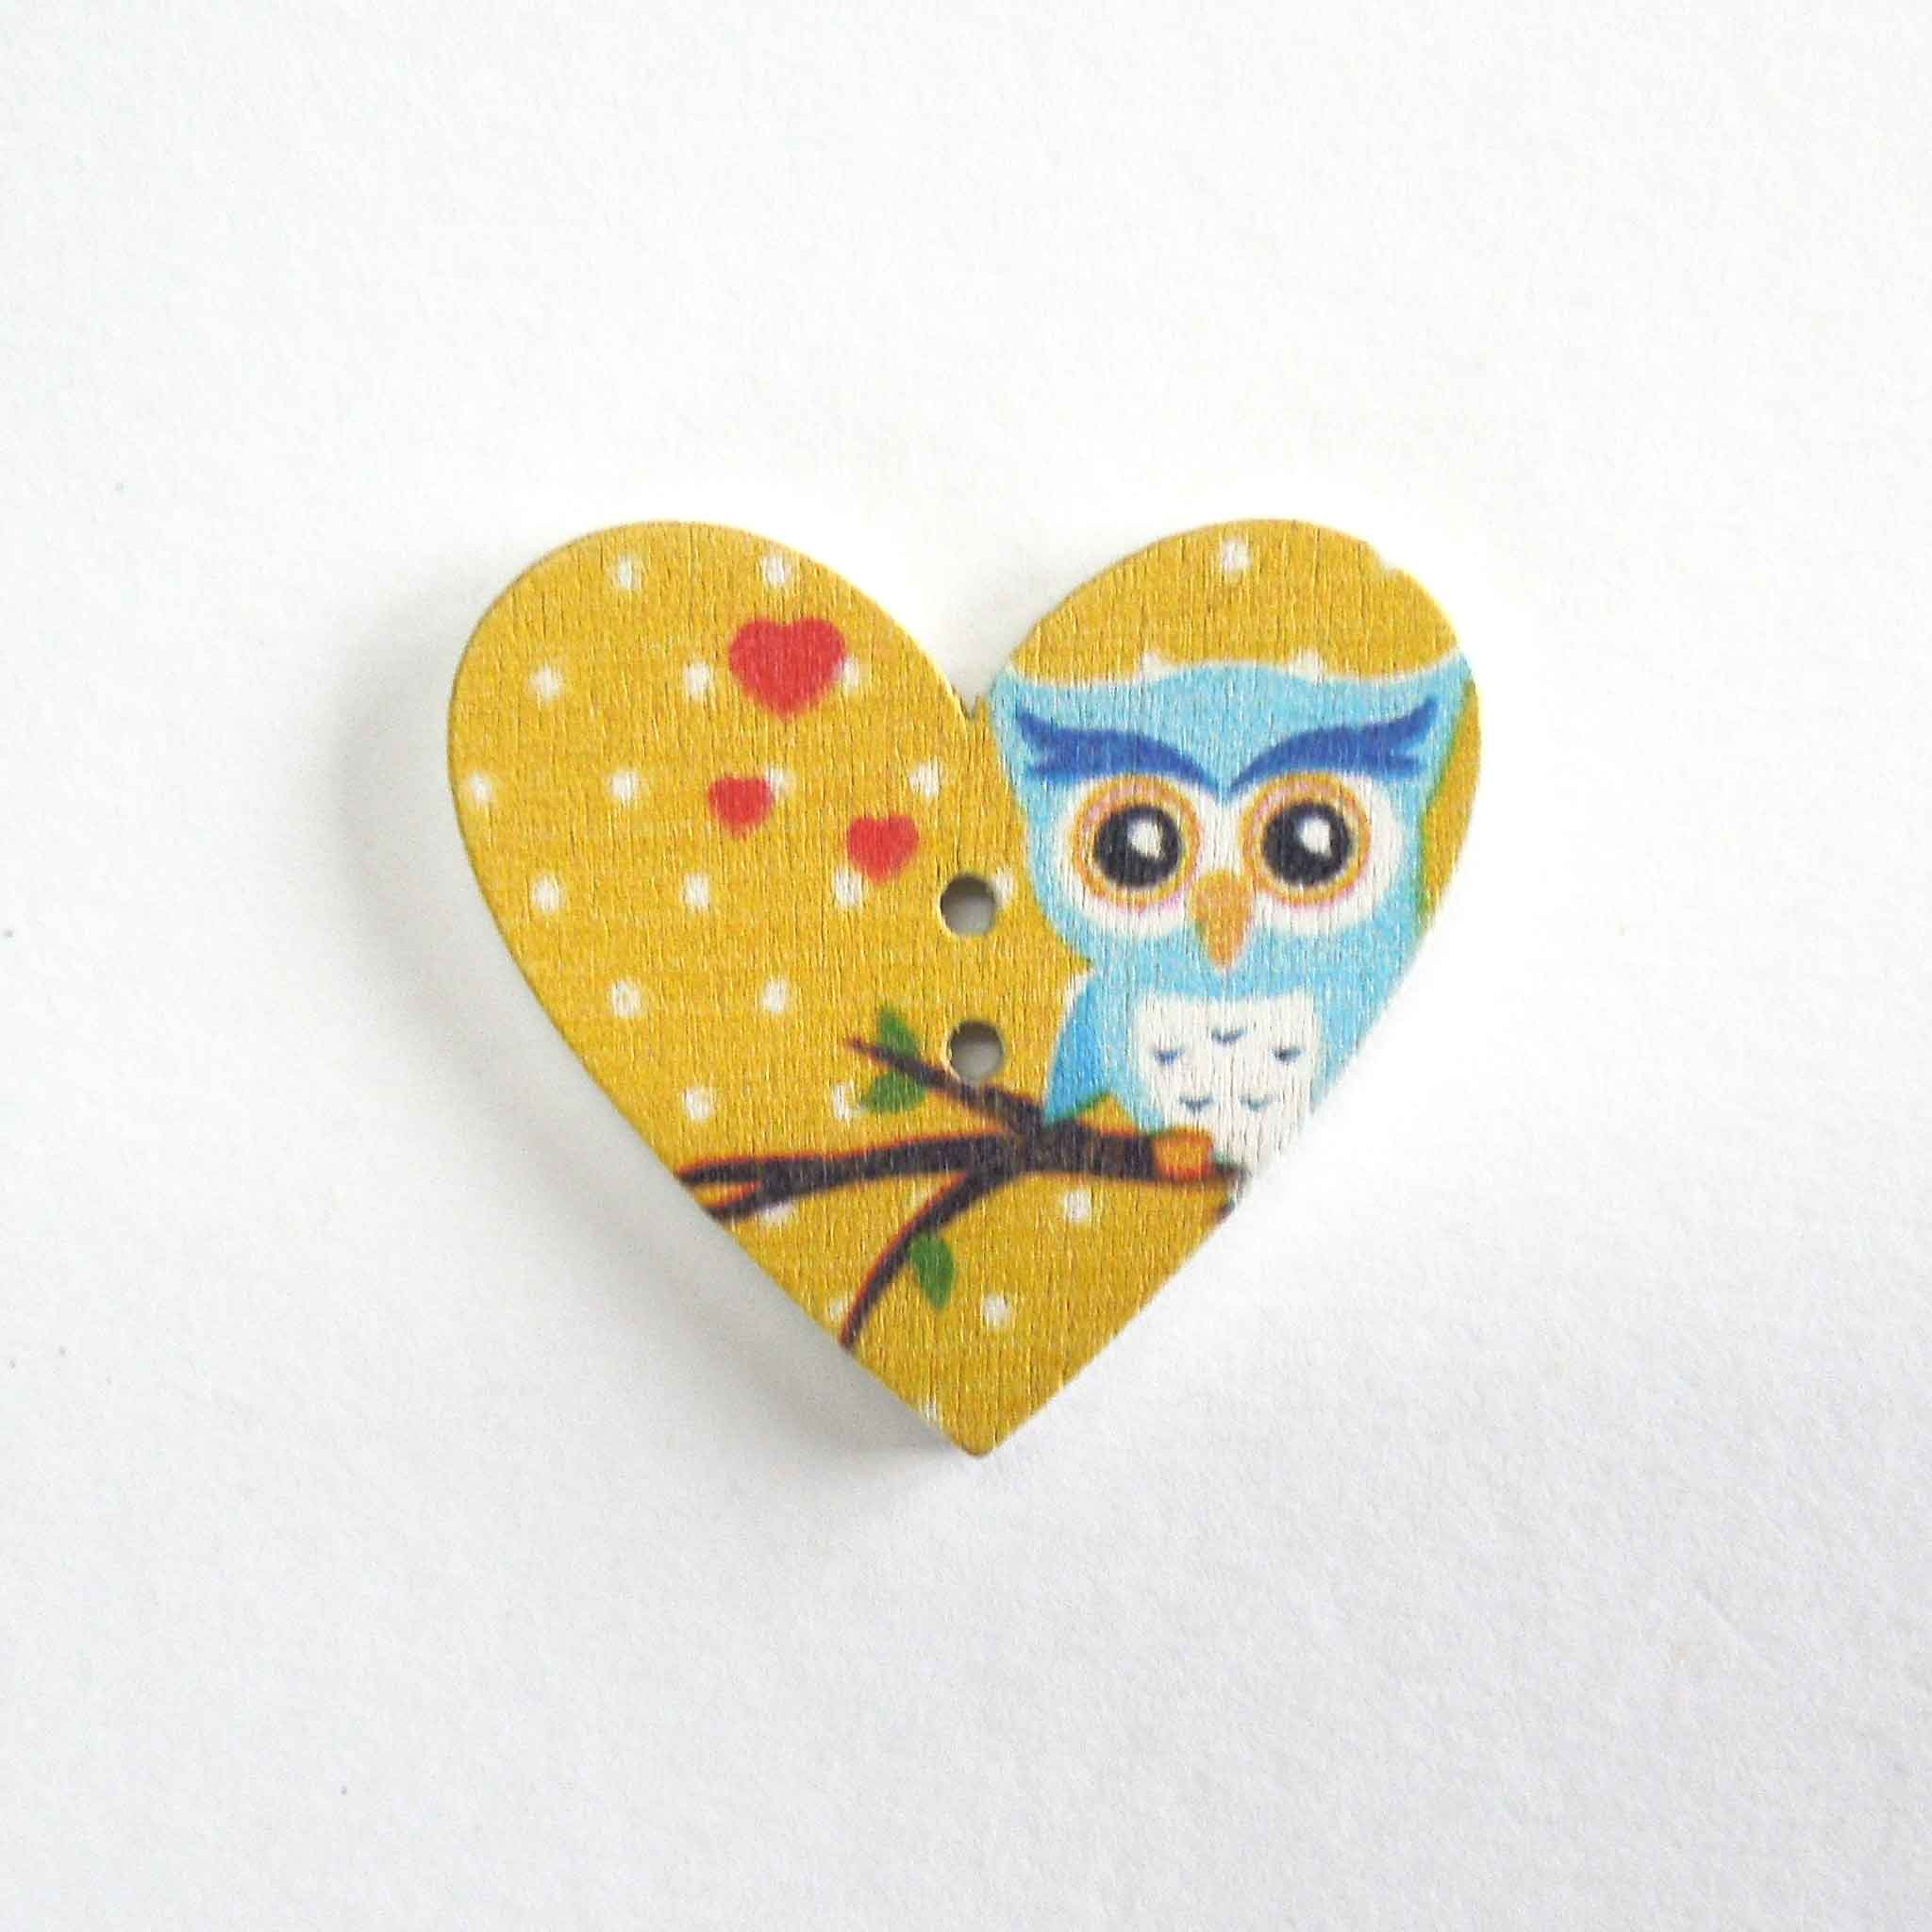 Blue Owl Heart Shaped Wood Buttons, 2 Holes, Pack of 3 Buttons